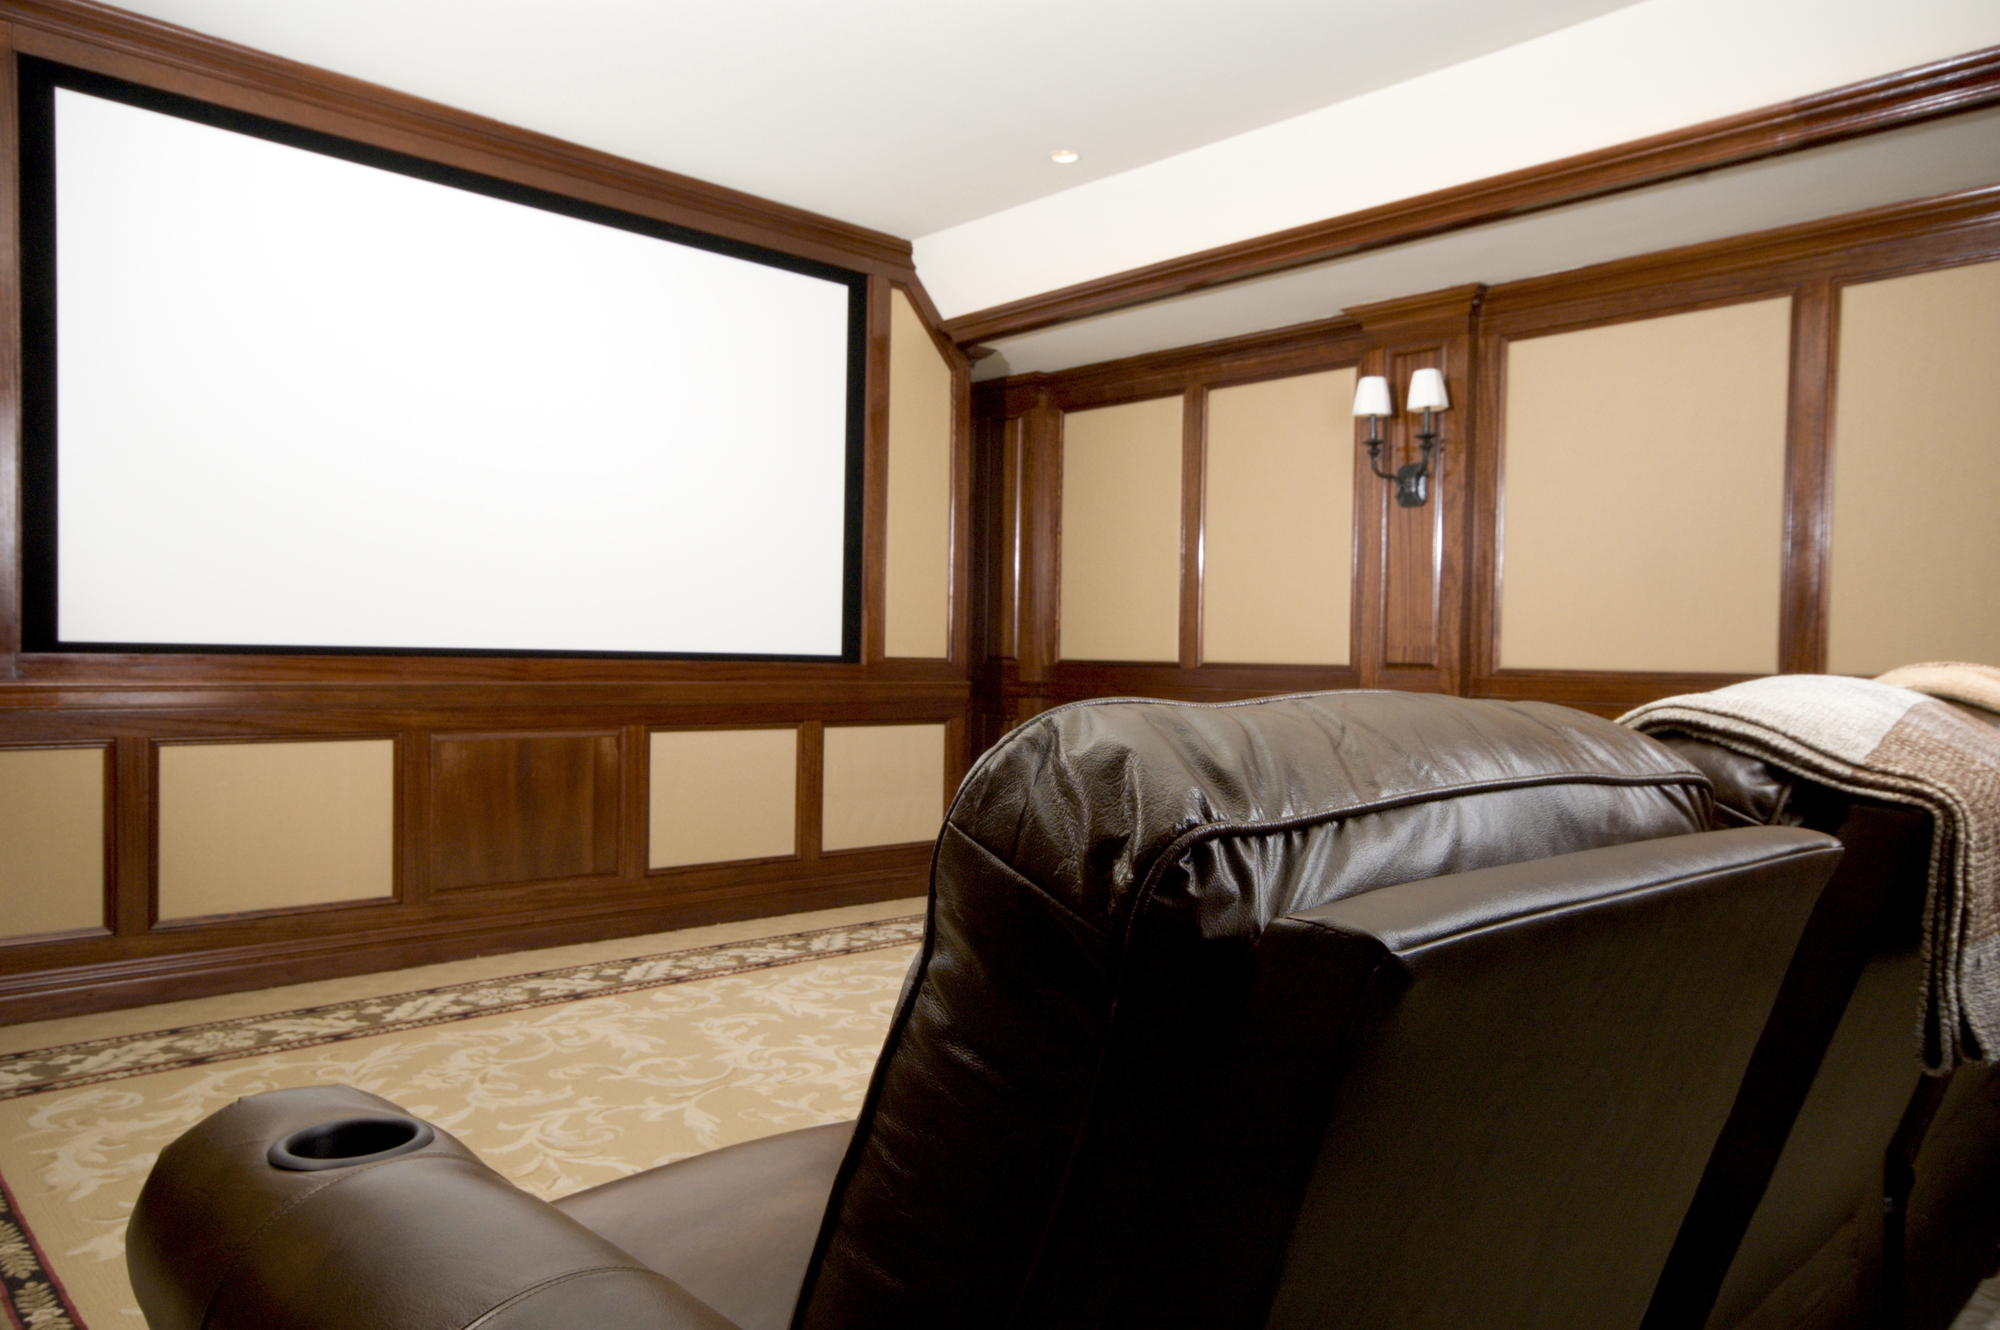 5 Home Remodeling Ideas After The Kids Move Out Thomas Custom Builders Llc Goshen Nearsay